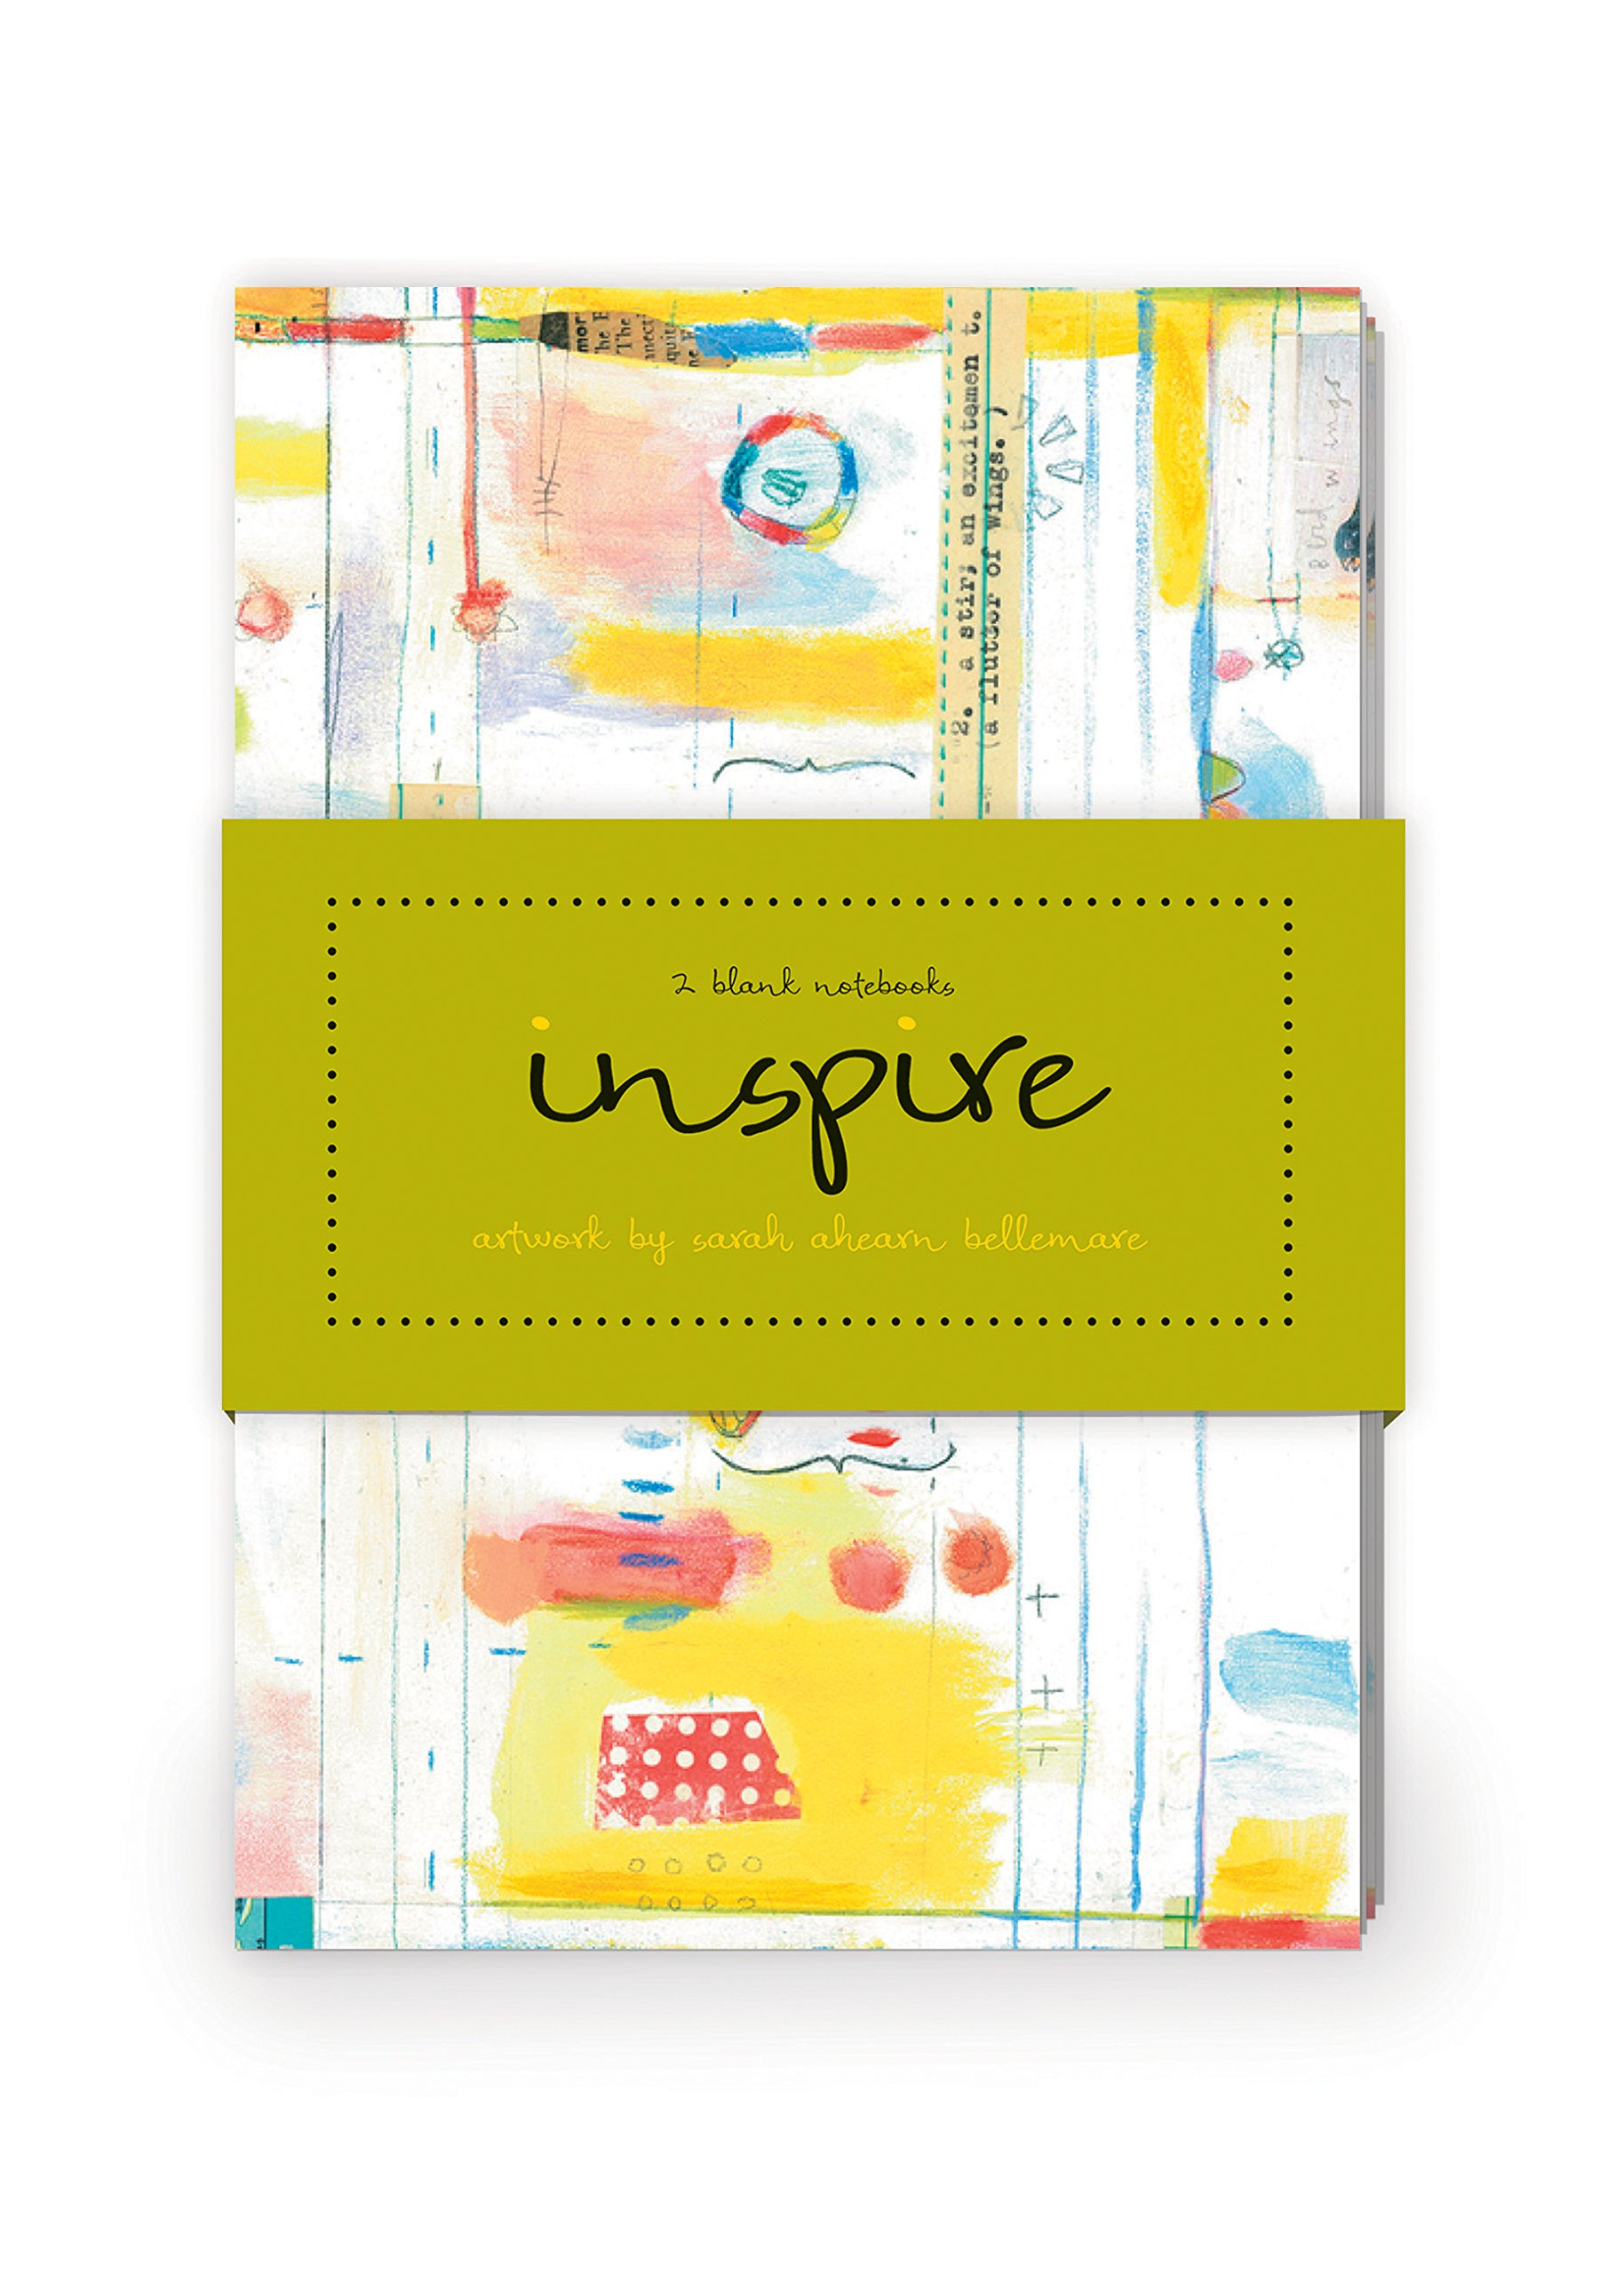 Inspire Artwork by Sarah Ahearn Bellemare Journal Collection 1: Set of two 64-page notebooks PDF